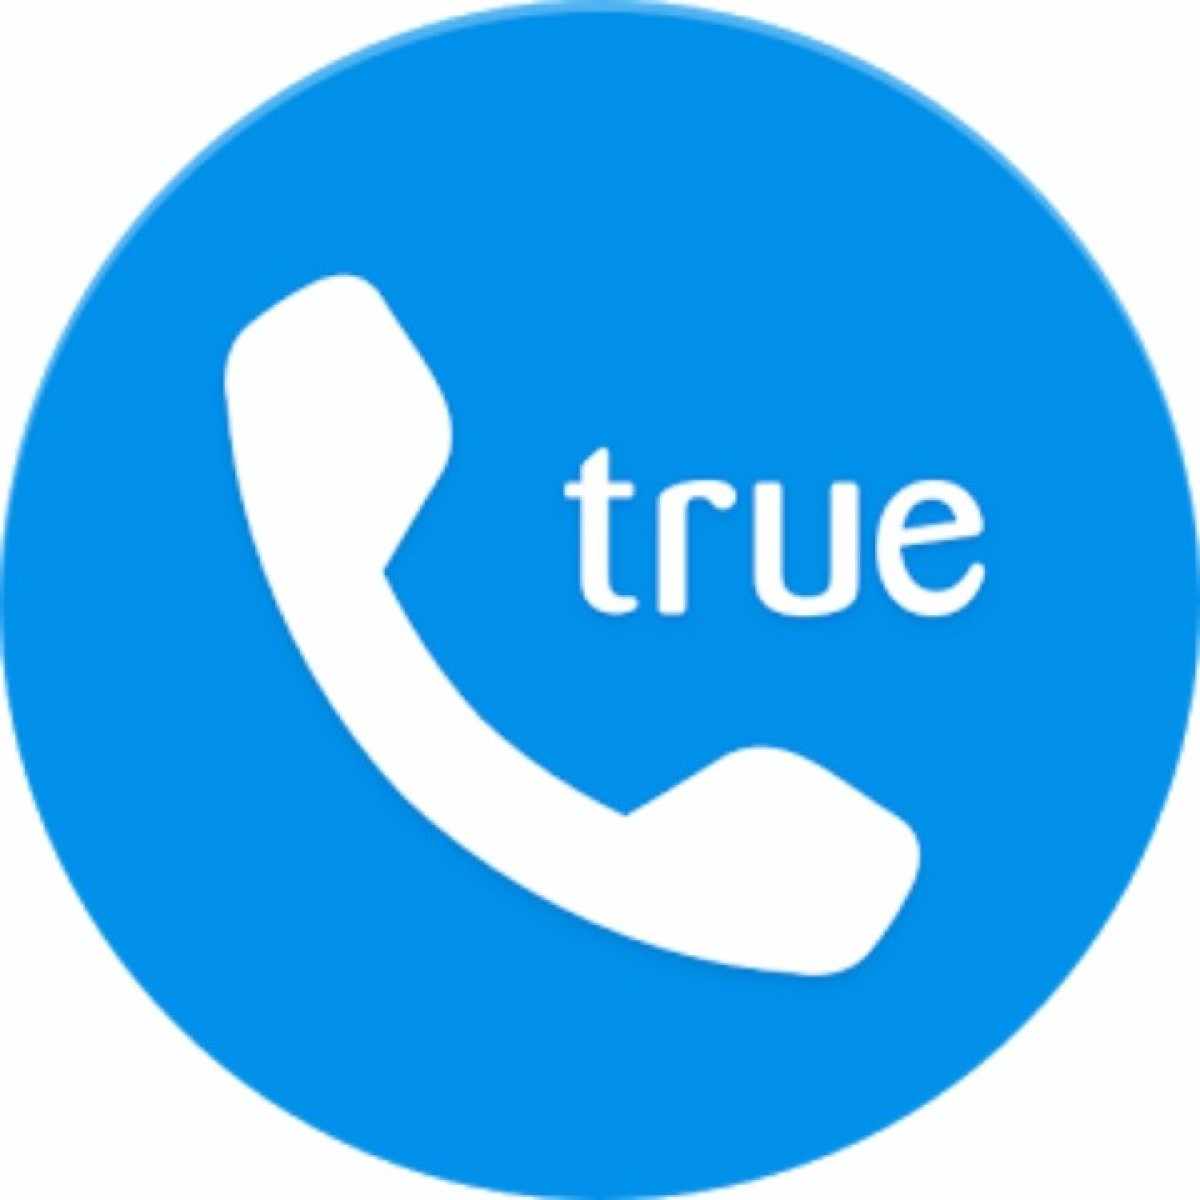 Truecaller Premium 11.21.6 Crack APK Free Download 2020